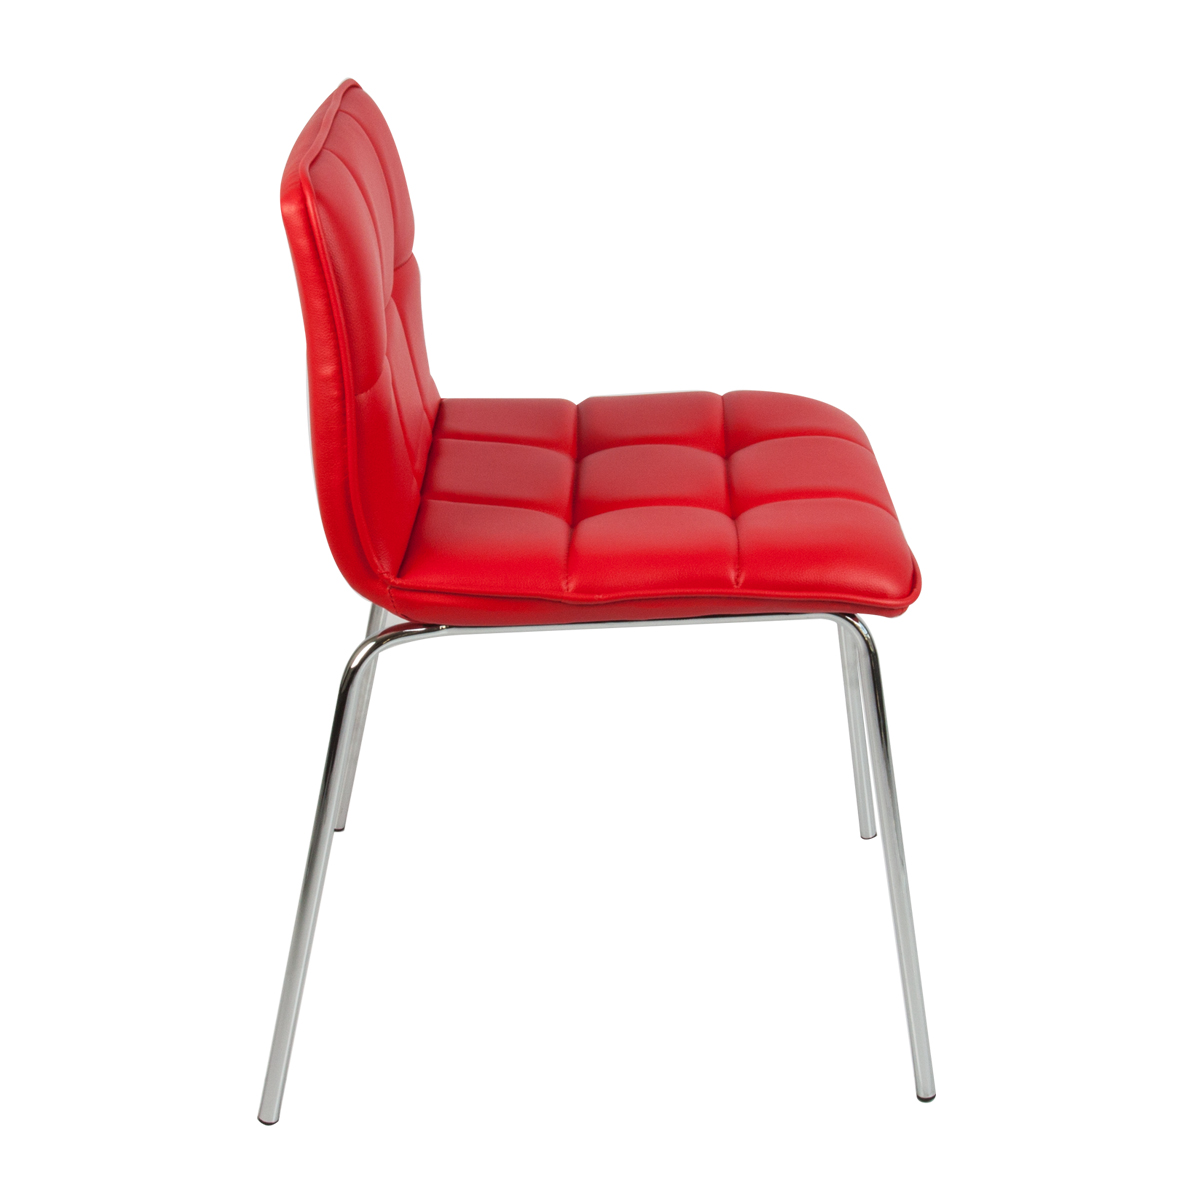 Waiting Room Chair Mid Century Modern Red Color Pu Leather